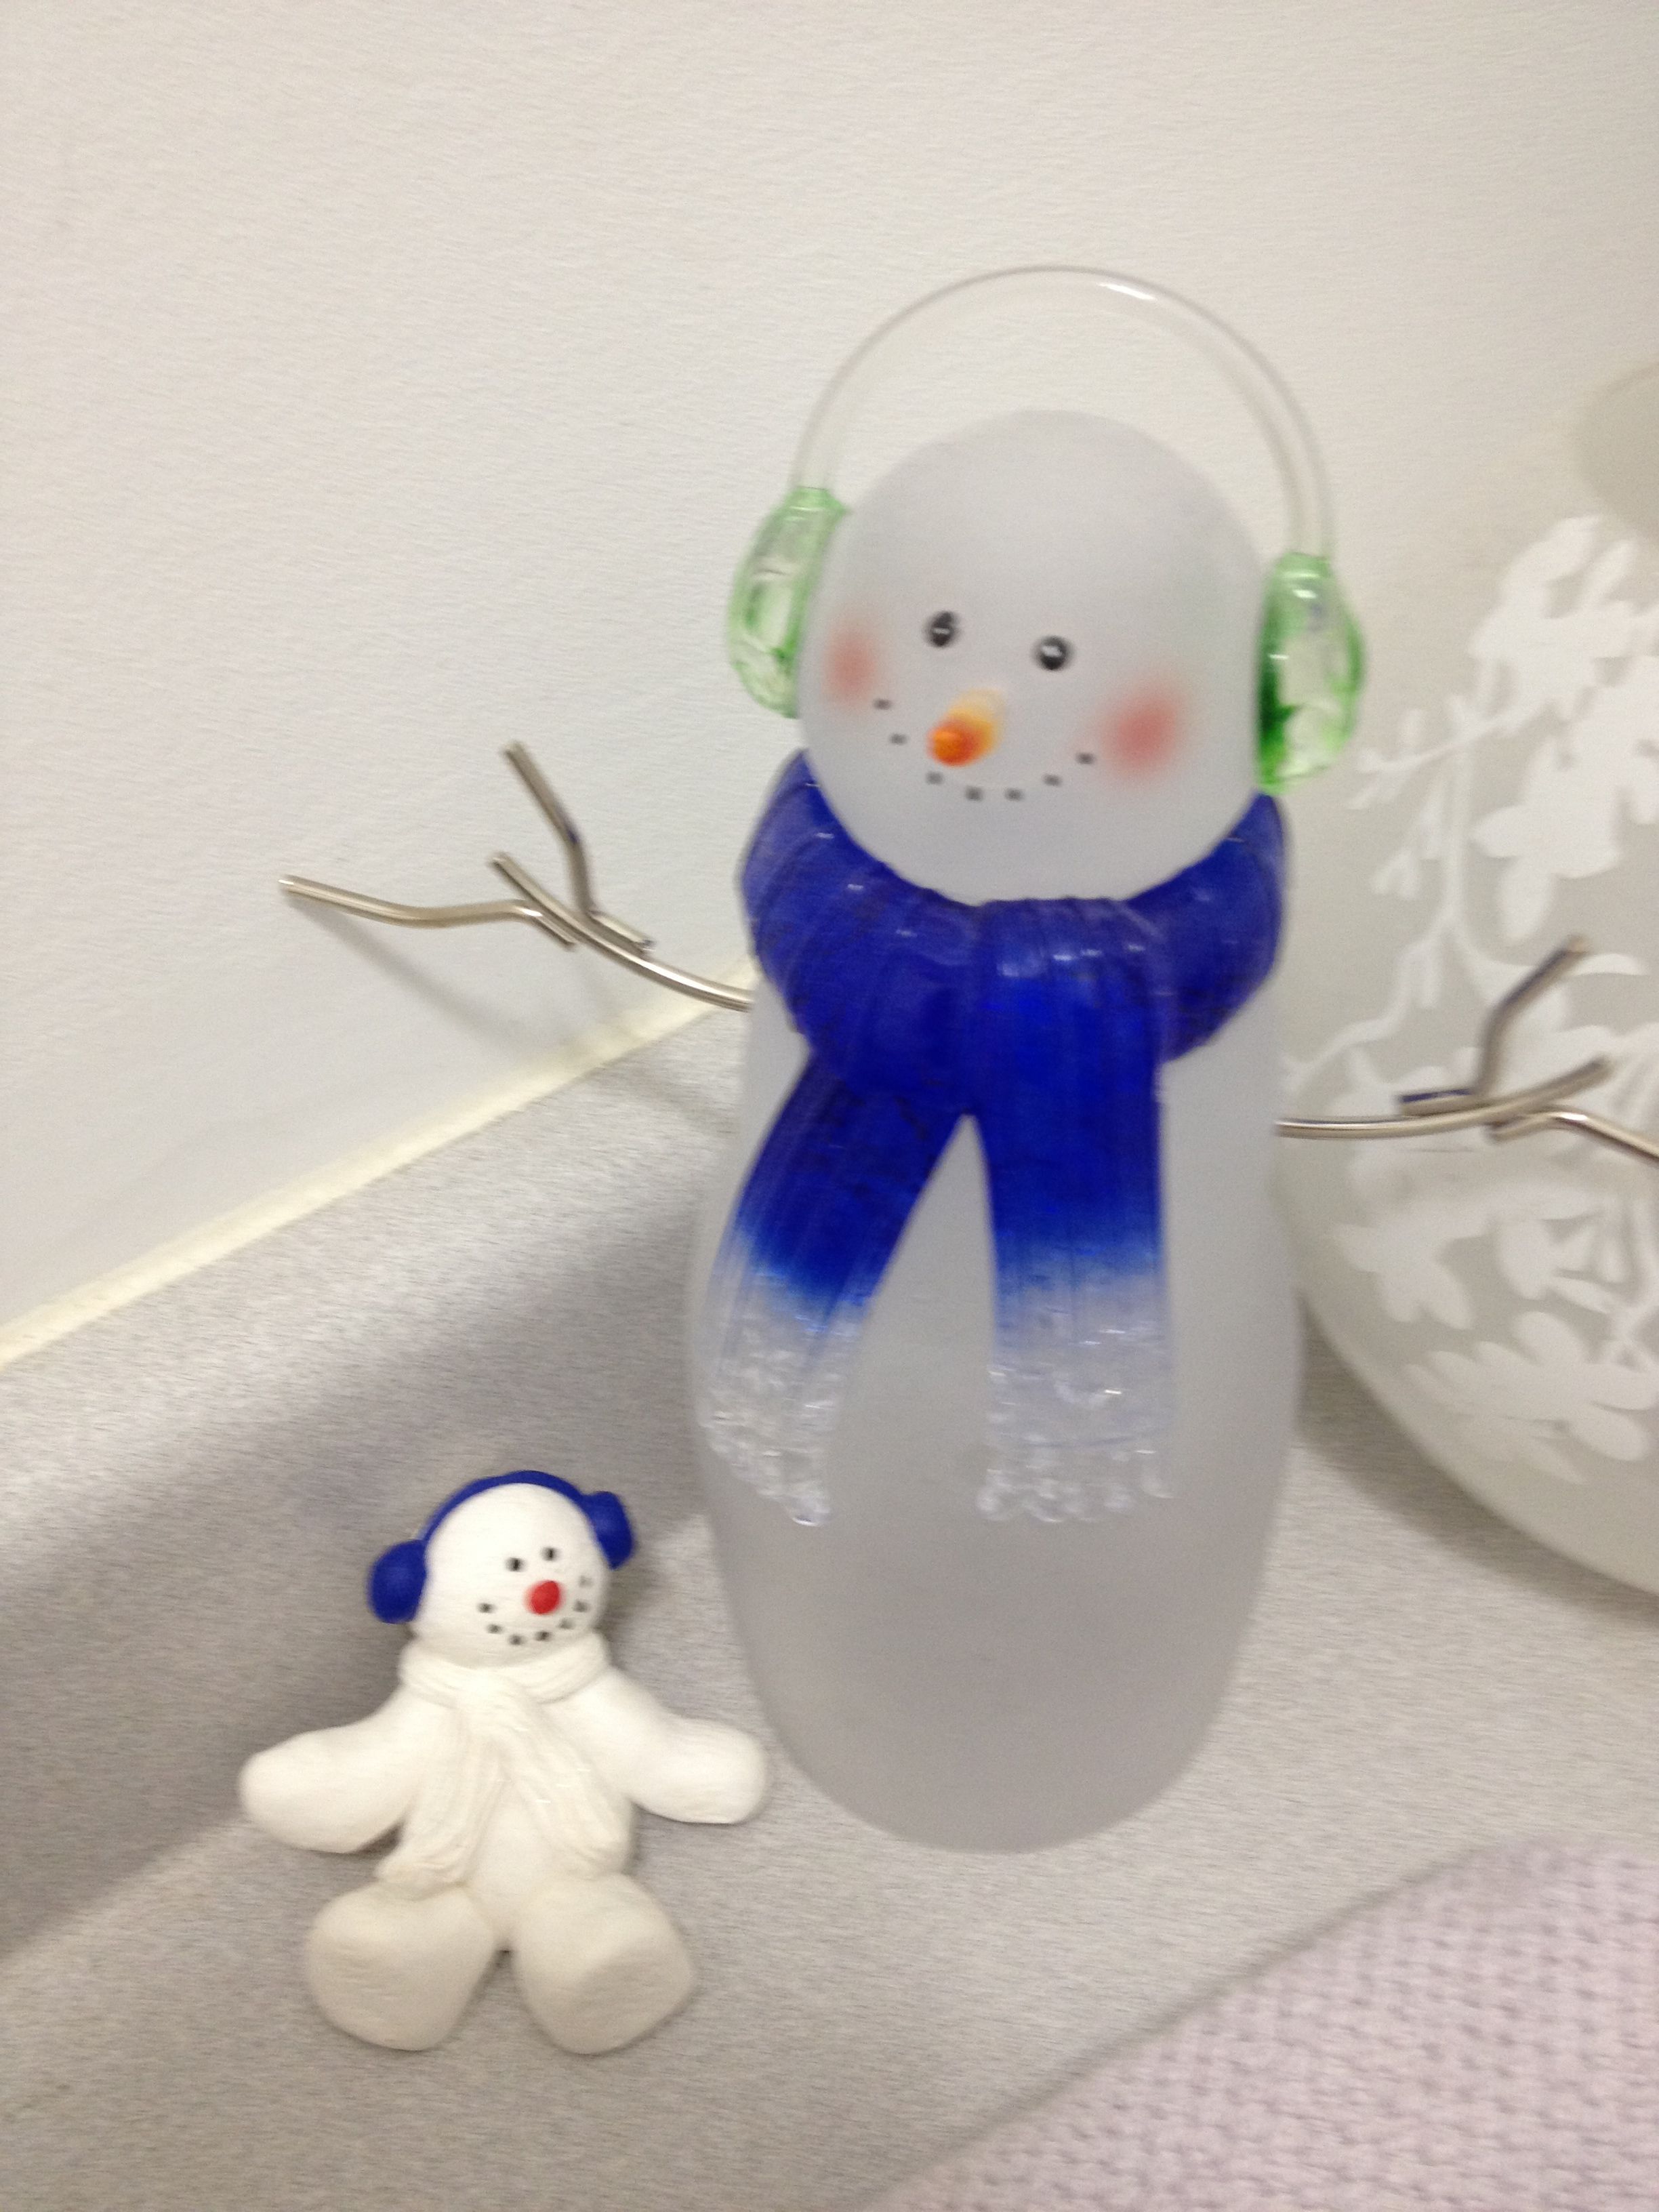 Pictures Of Snowmen | Search Results | Calendar 2015